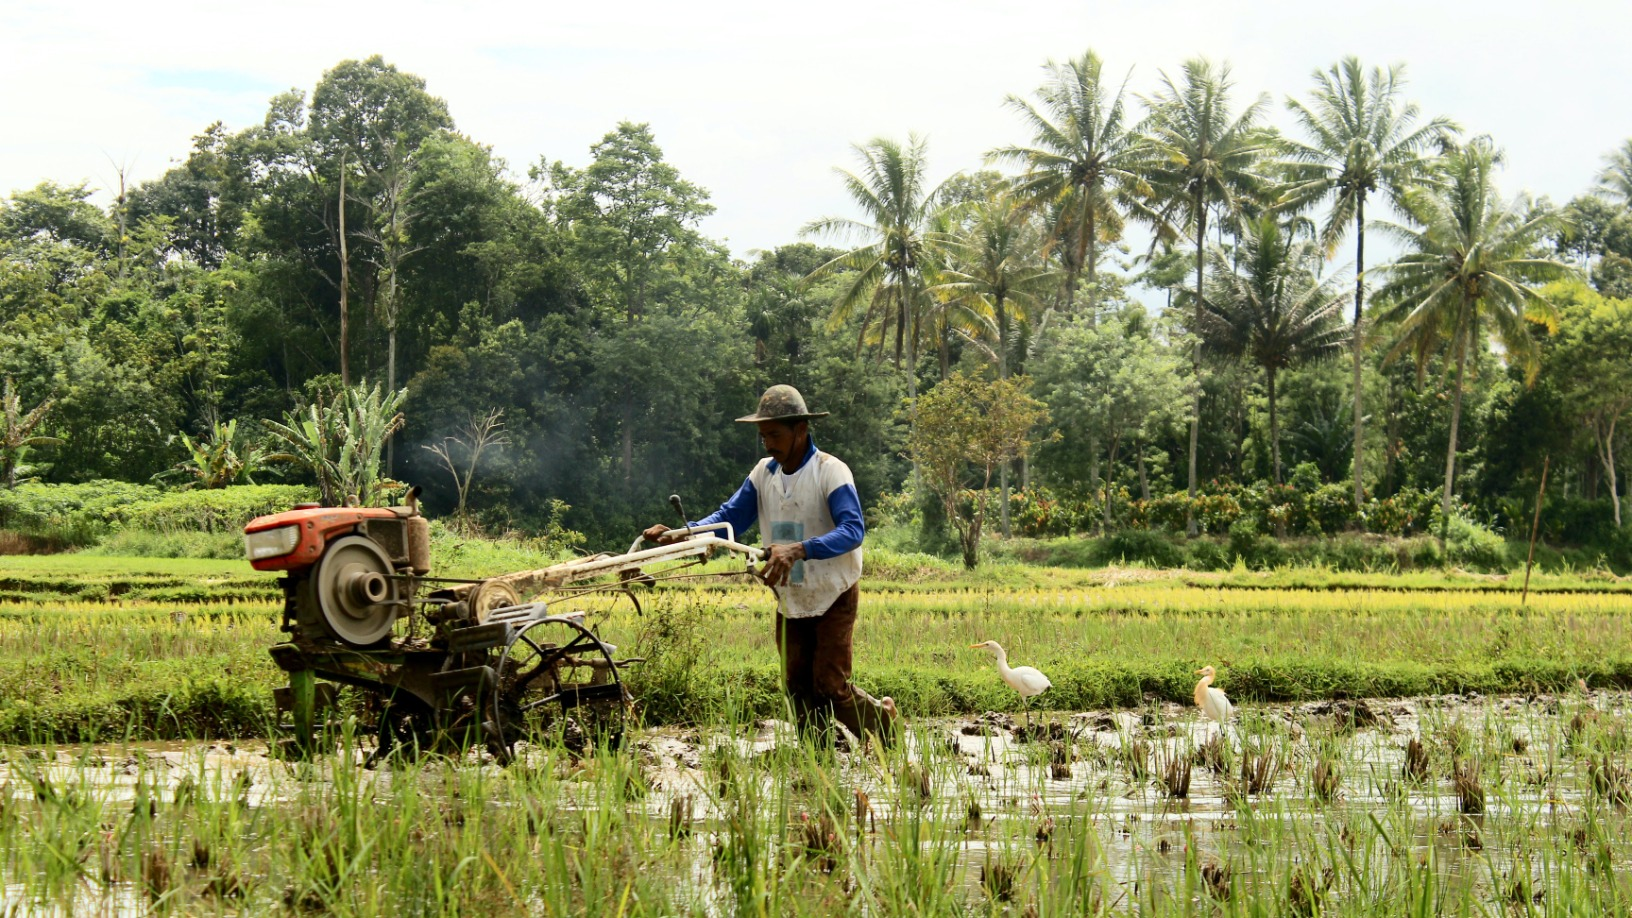 8villages to refocus business, shelve B2C agri-ecommerce ops as Covid boost proves short-lived